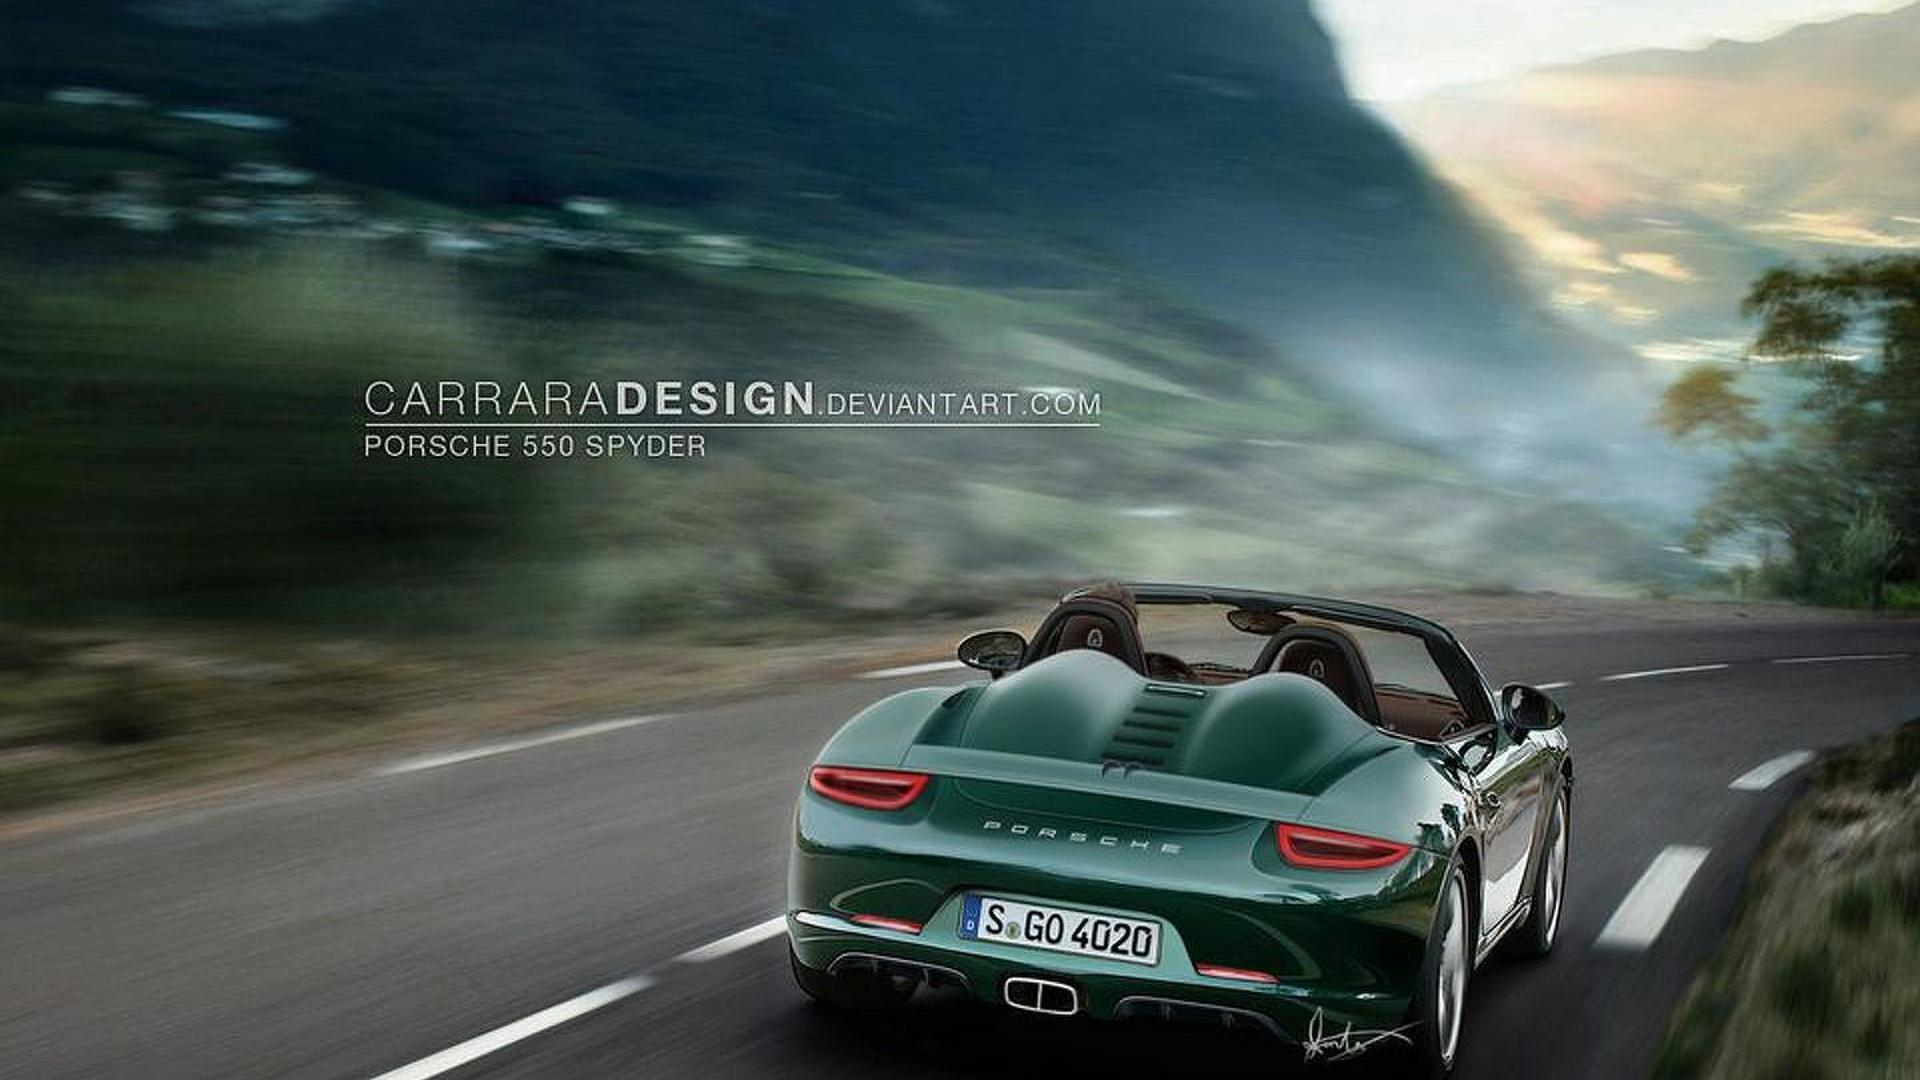 Entry-level Porsche roadster hinges on economic recovery